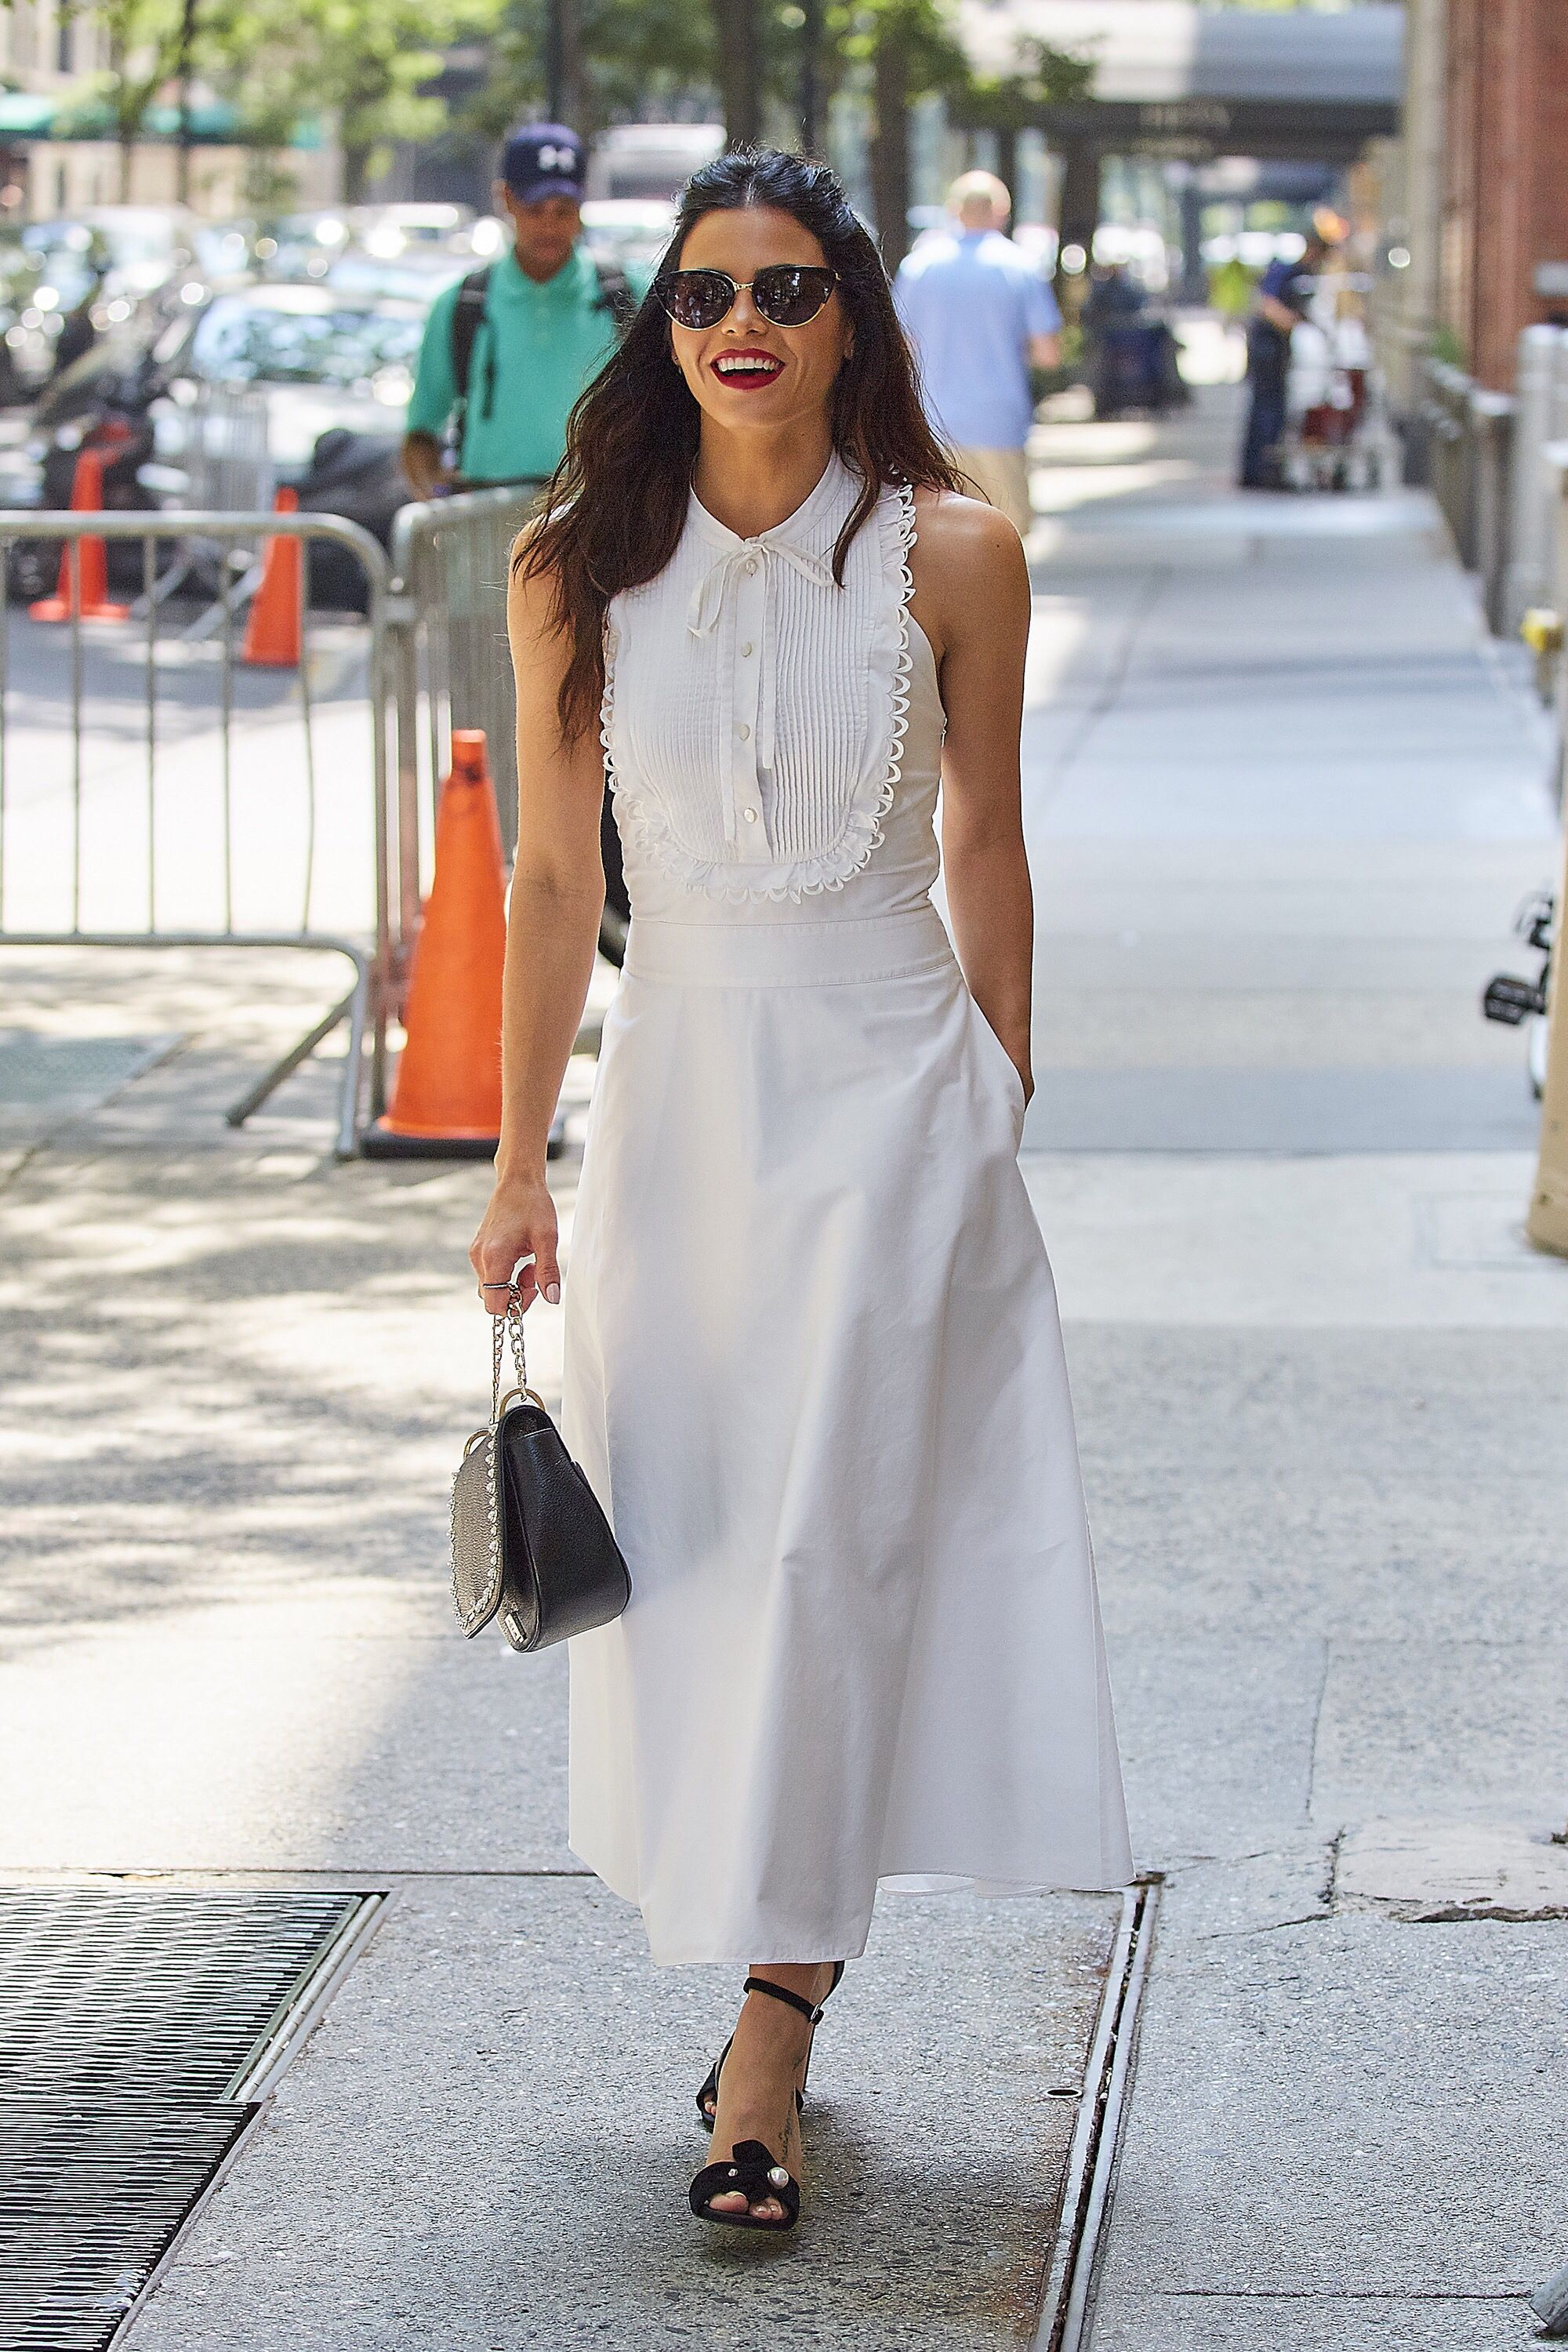 Le Fashion Blog Jenna Dewan Tatum Classic White Sundress Black Heels Via Harpers Bazaar